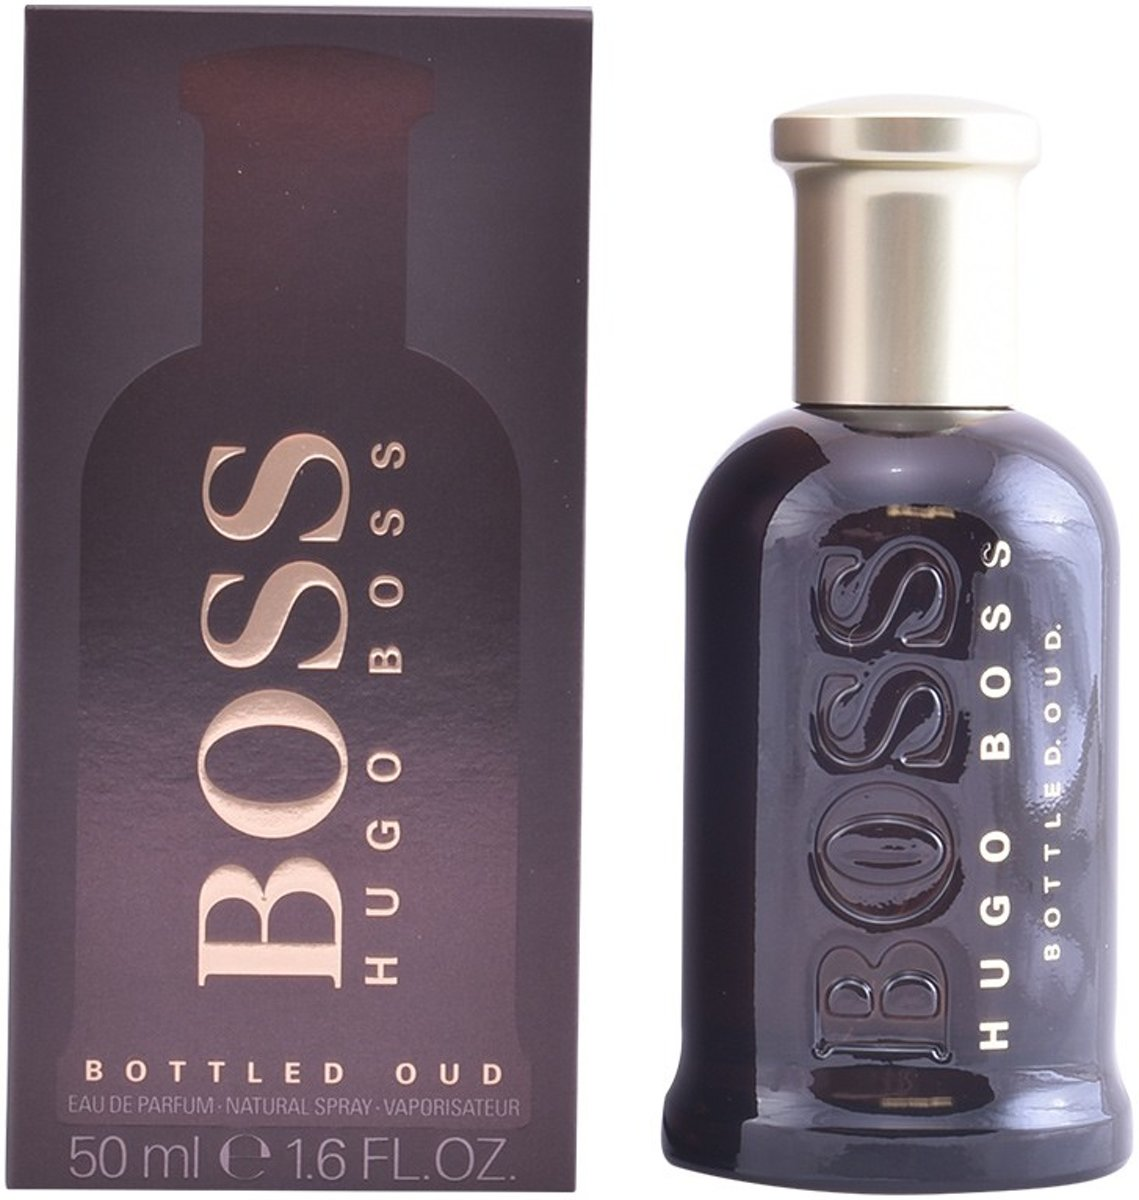 MULTI BUNDEL 2 stuks BOSS BOTTLED OUD Eau de Perfume Spray 50 ml